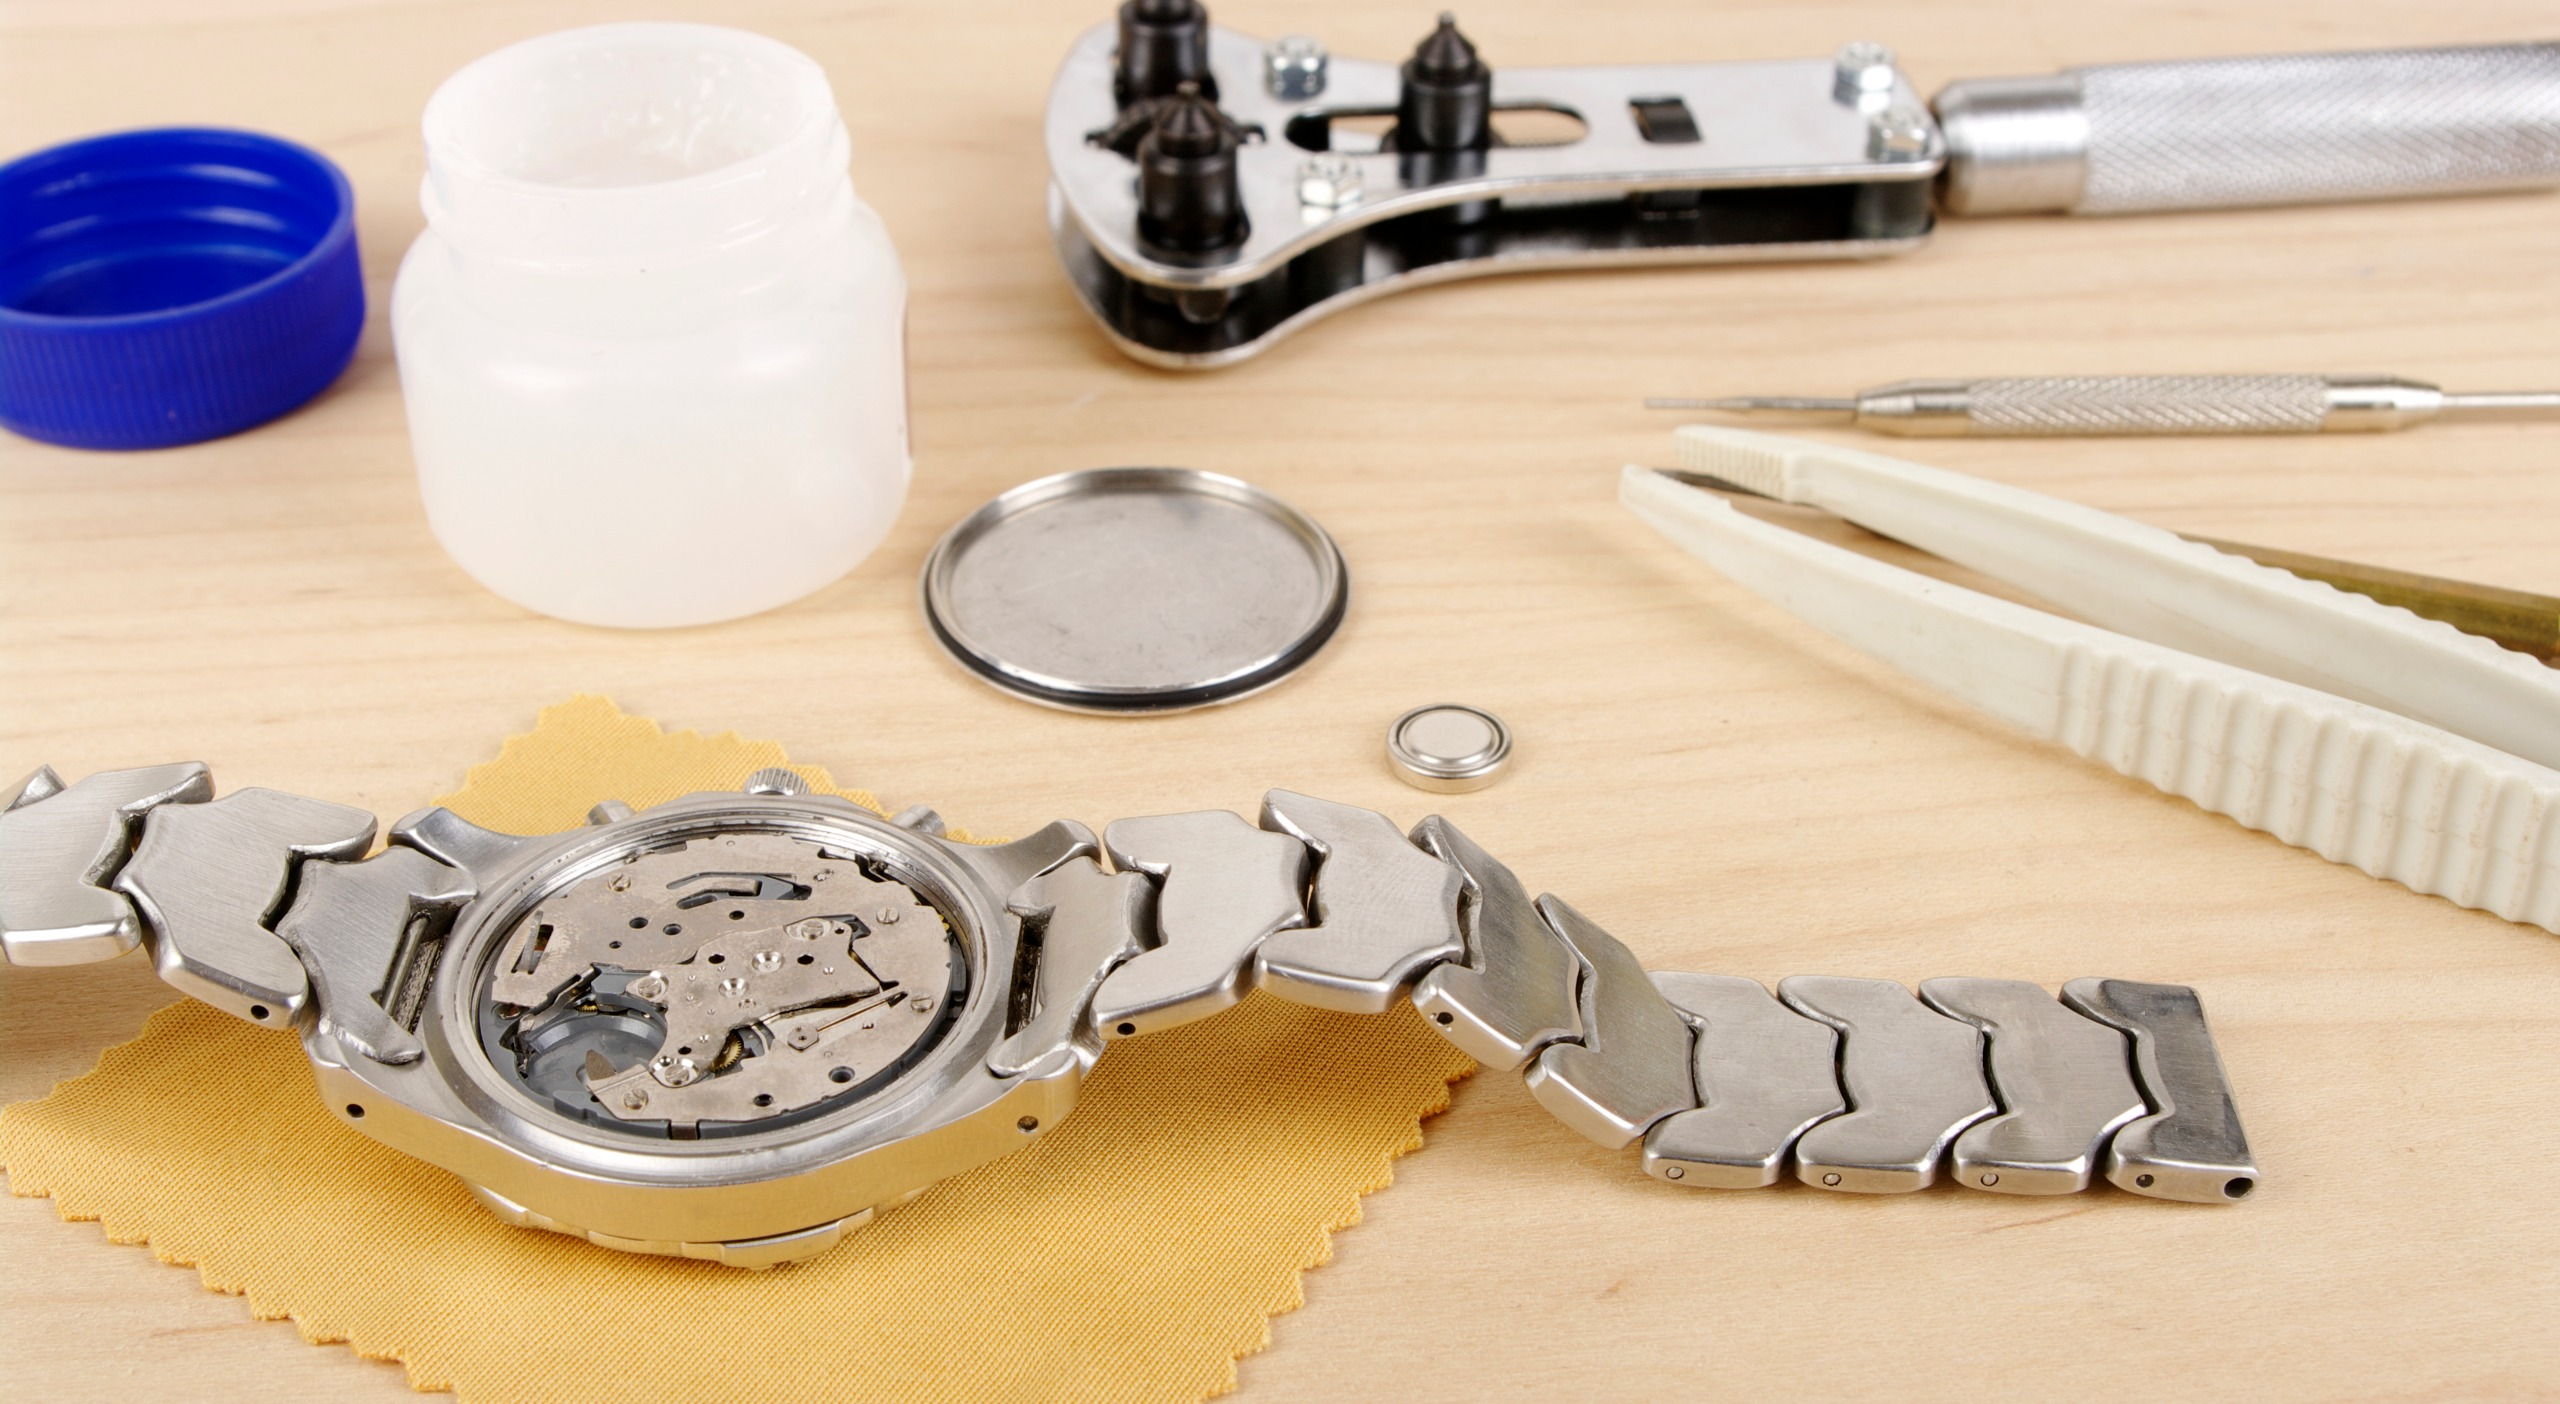 How To Clean A Silicone Watch Band: Quick Steps